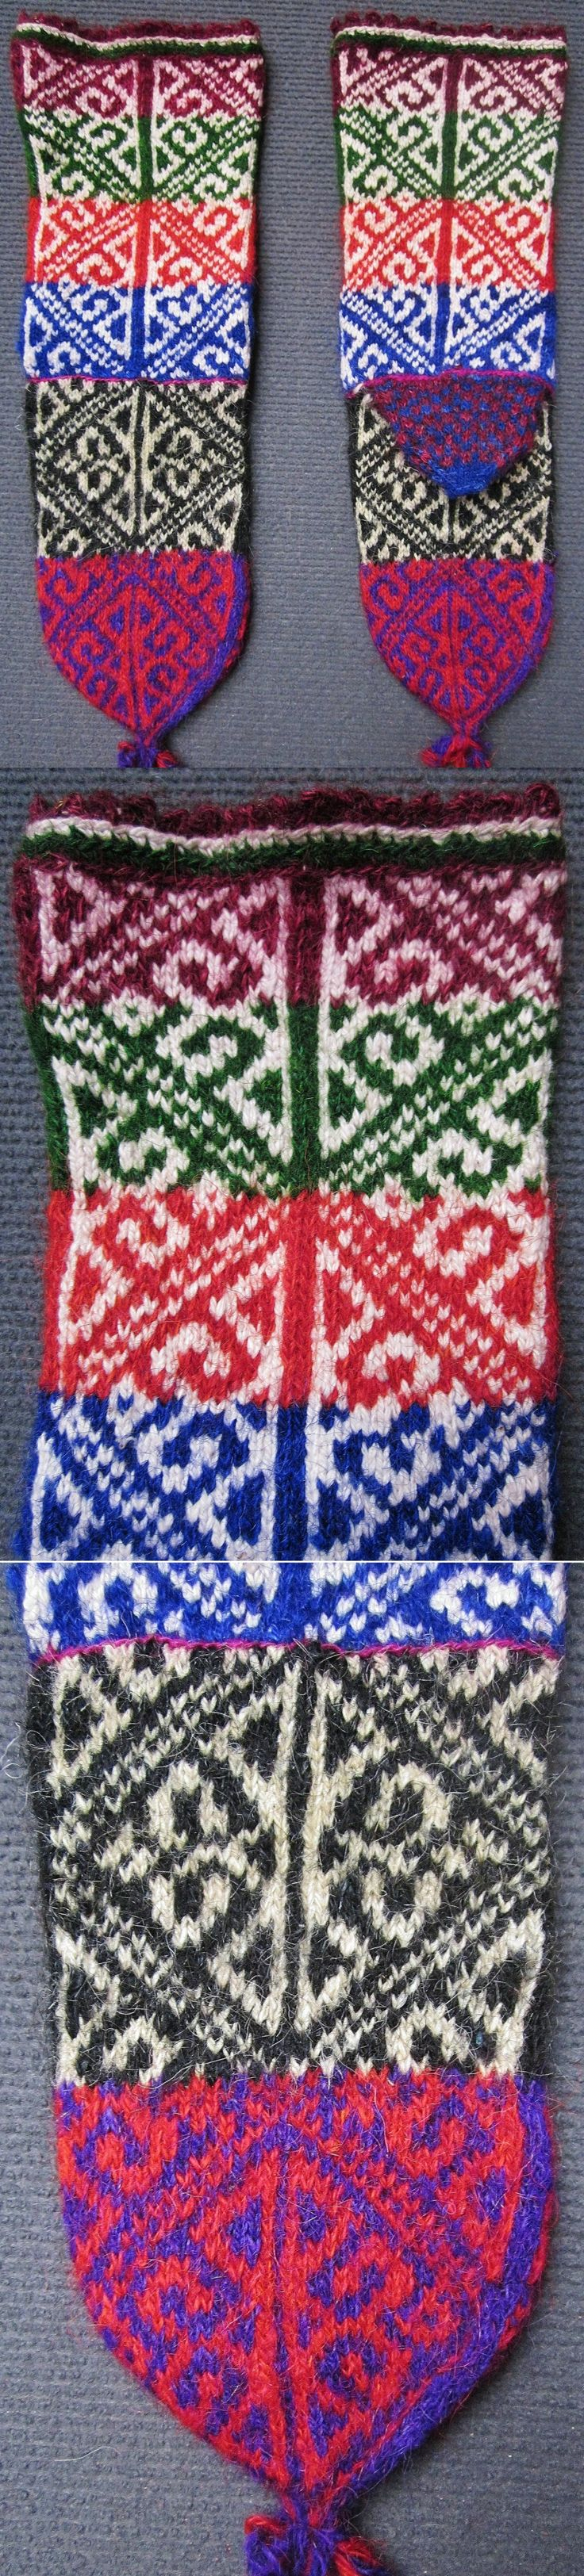 Traditional hand-knitted woollen stockings, for men.   From the Konya province.  Late 20th century.  The composite pattern shows 'koçboynuzu' (= 'ram's horn', which symbolises male fertility, male power and heroism) inside diamond-shaped 'ayna' (mirror), which is an amulet against the evil eye.   (Inv.nr. çor016 - Kavak Costume Collection - Antwerpen/Belgium).